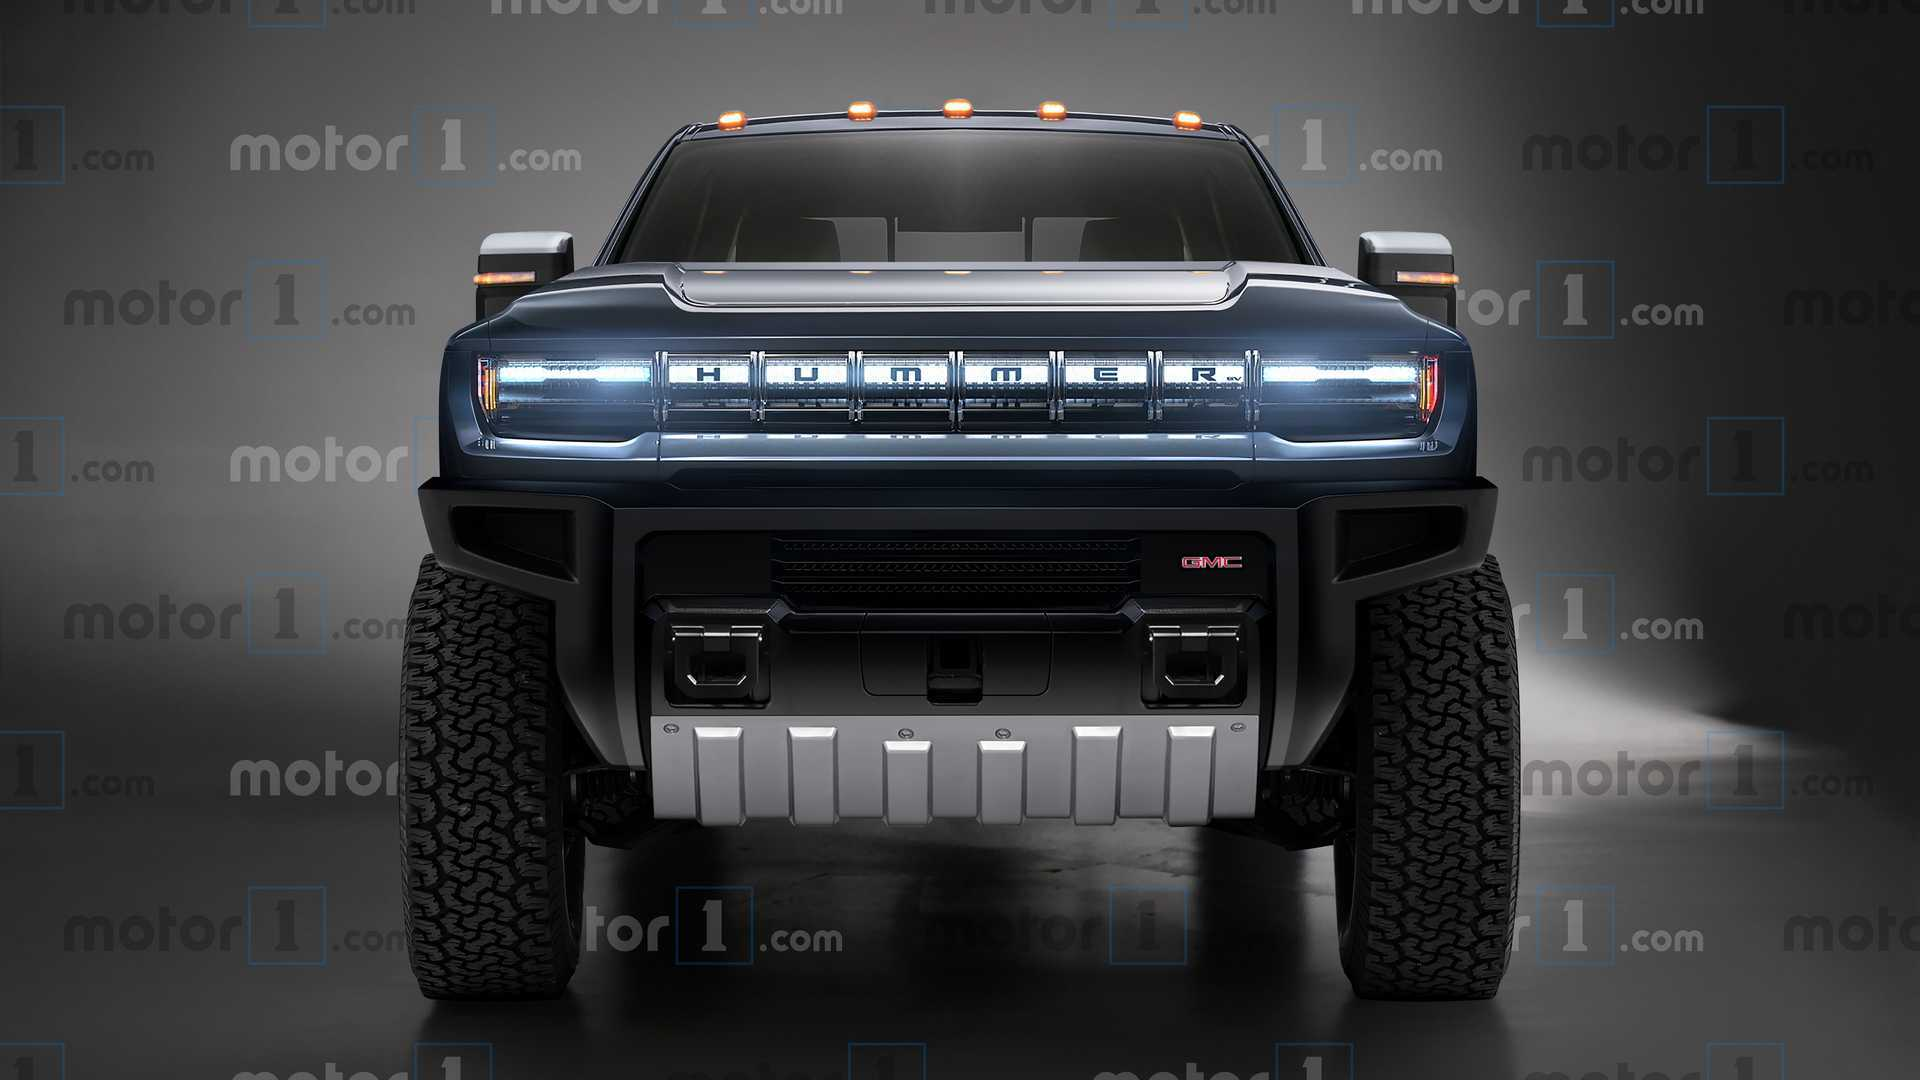 Gmc Hummer Ev Imagined As A Three Row Suv